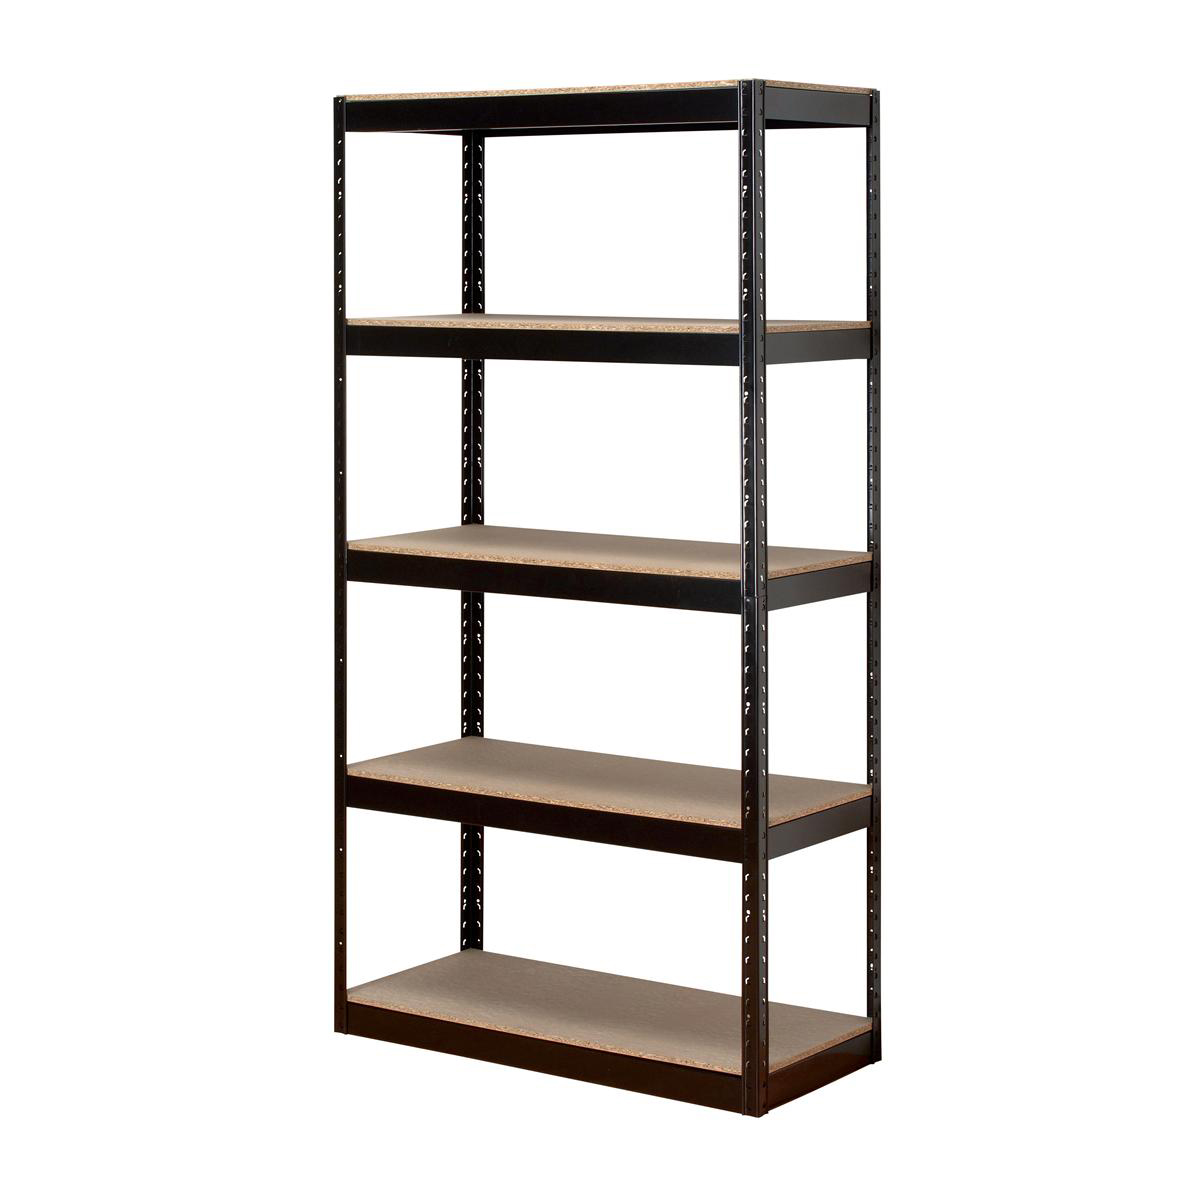 Influx Storage Shelving Unit Heavy-duty Boltless 5 Shelves Capacity 150kg Black Ref SP